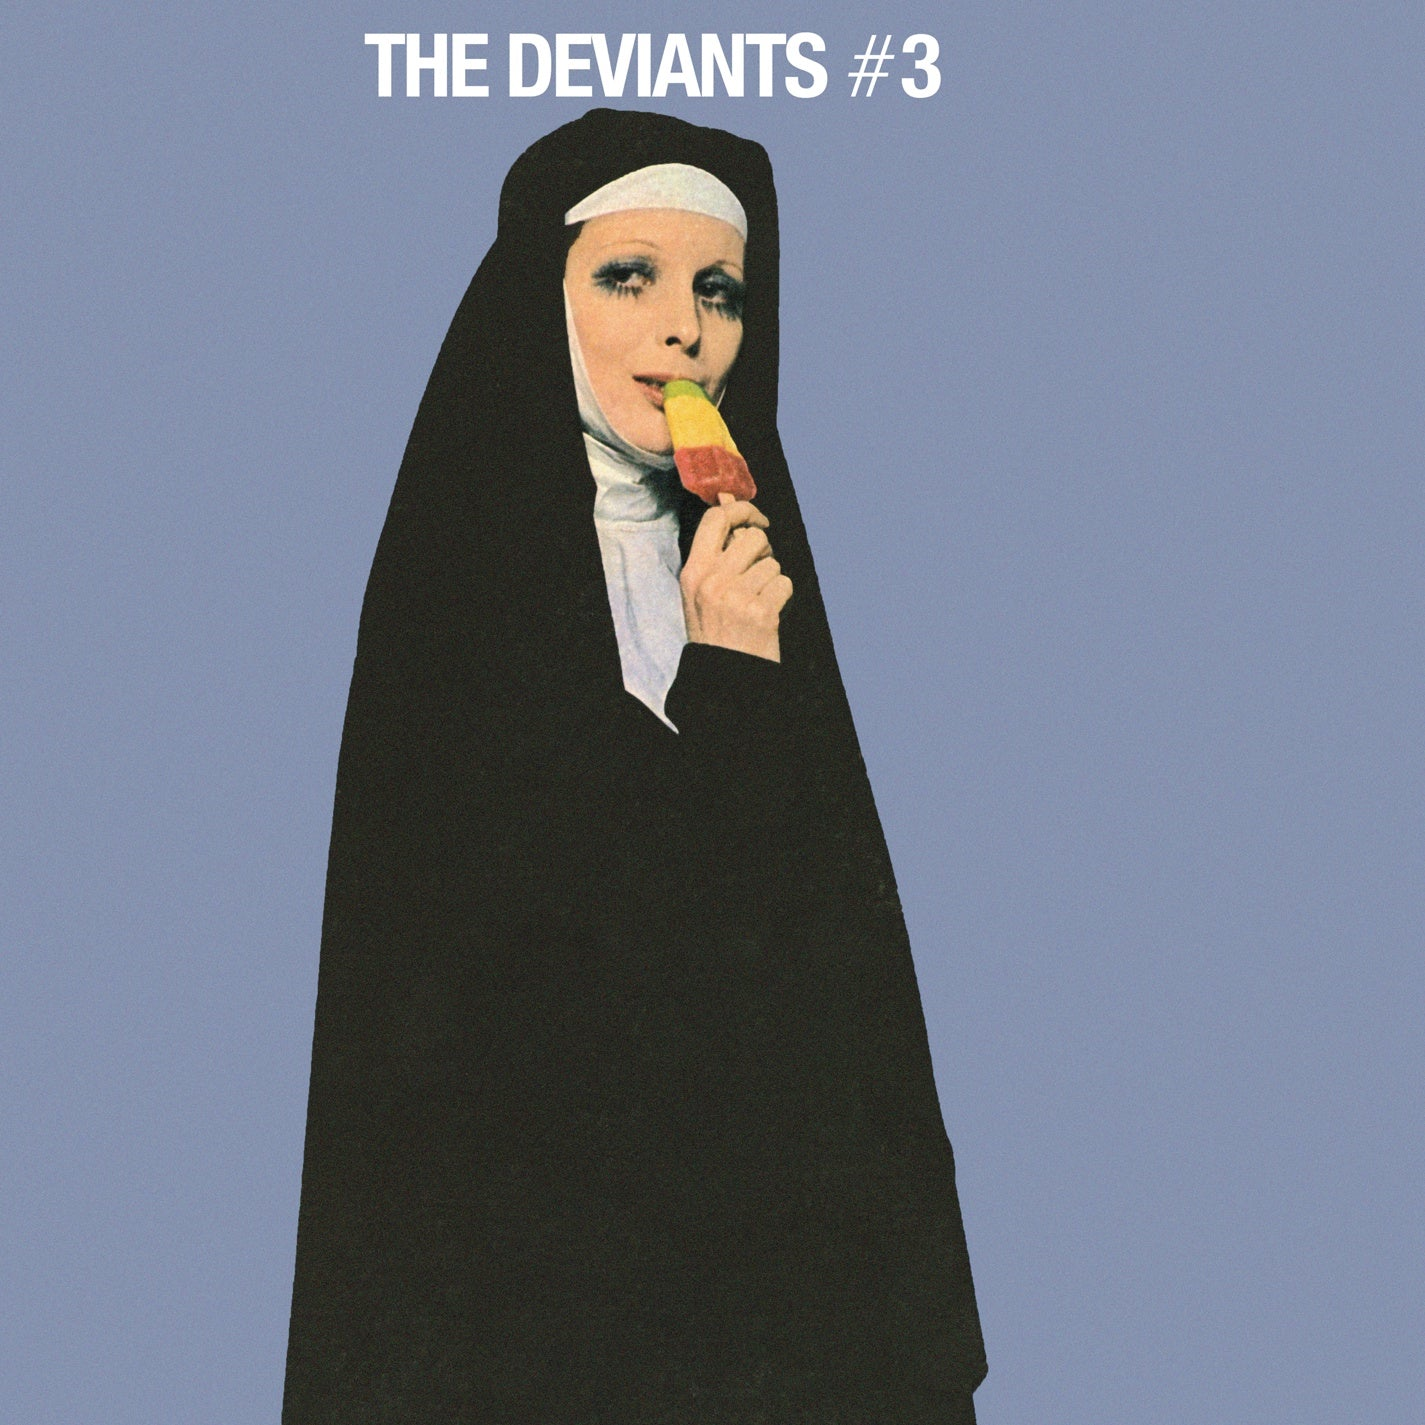 The Deviants - The Deviants #3 (1969) - New LP Record 2019 Black and White 'Nun's Habit' Ressue - Psych-Rock